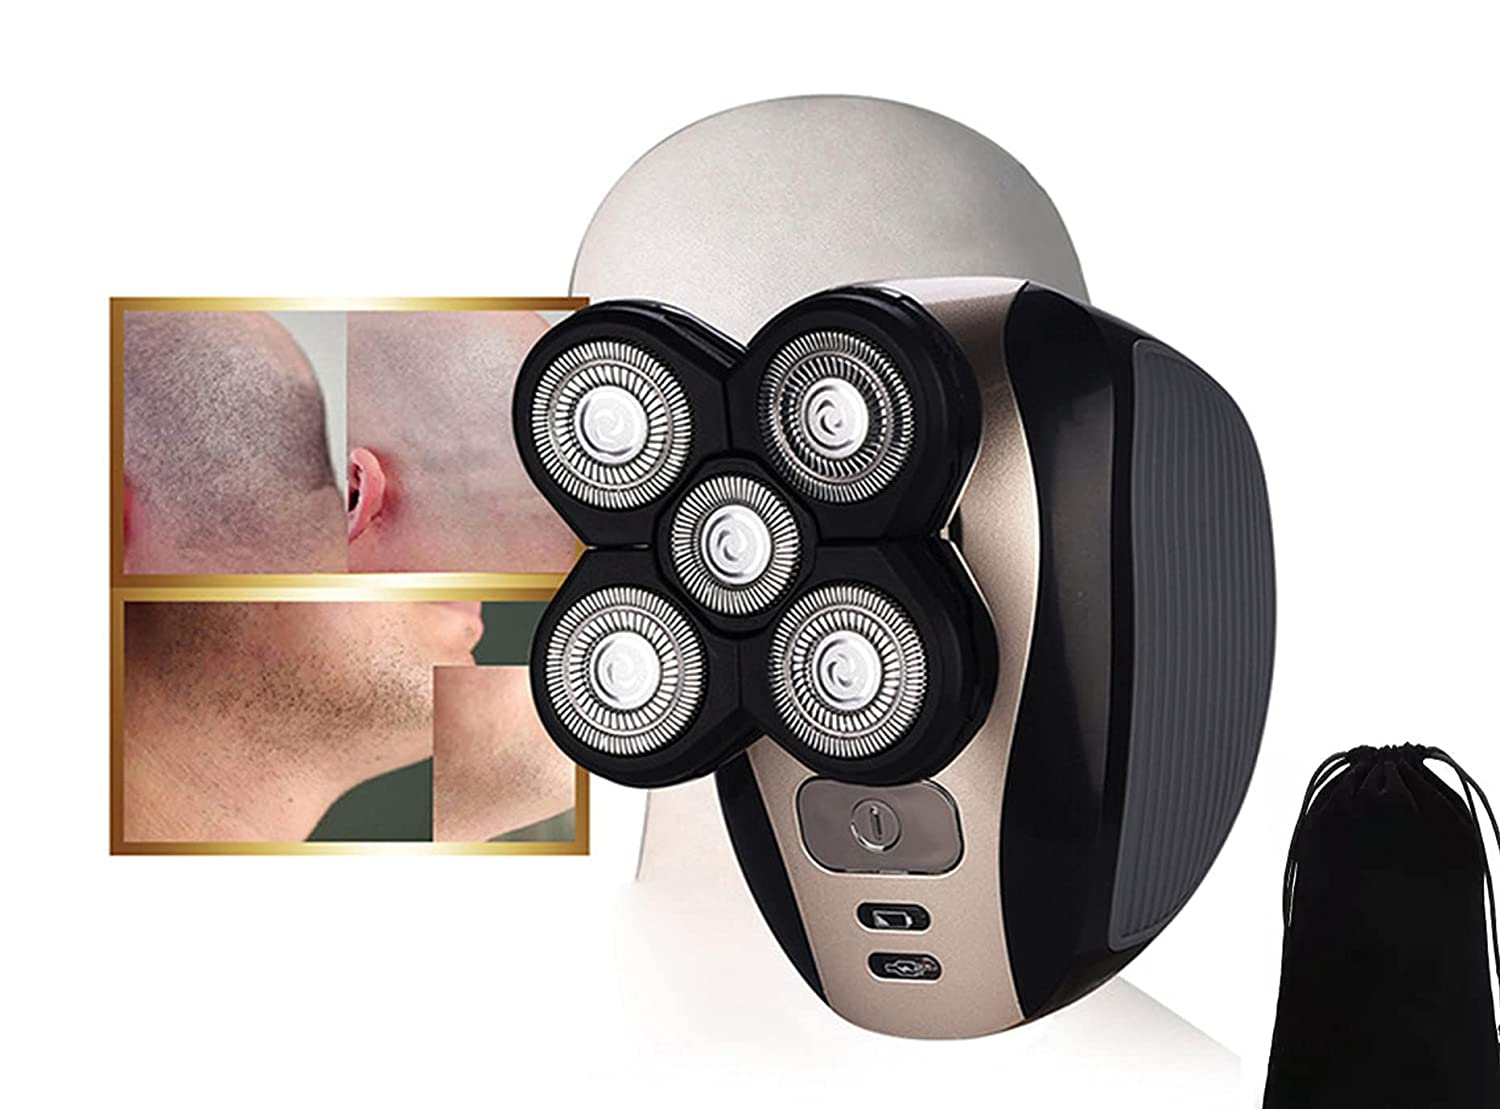 Men's Electric Shaver Flex 360 5 Multifunctional Rotary Ranking TOP13 Super sale in1